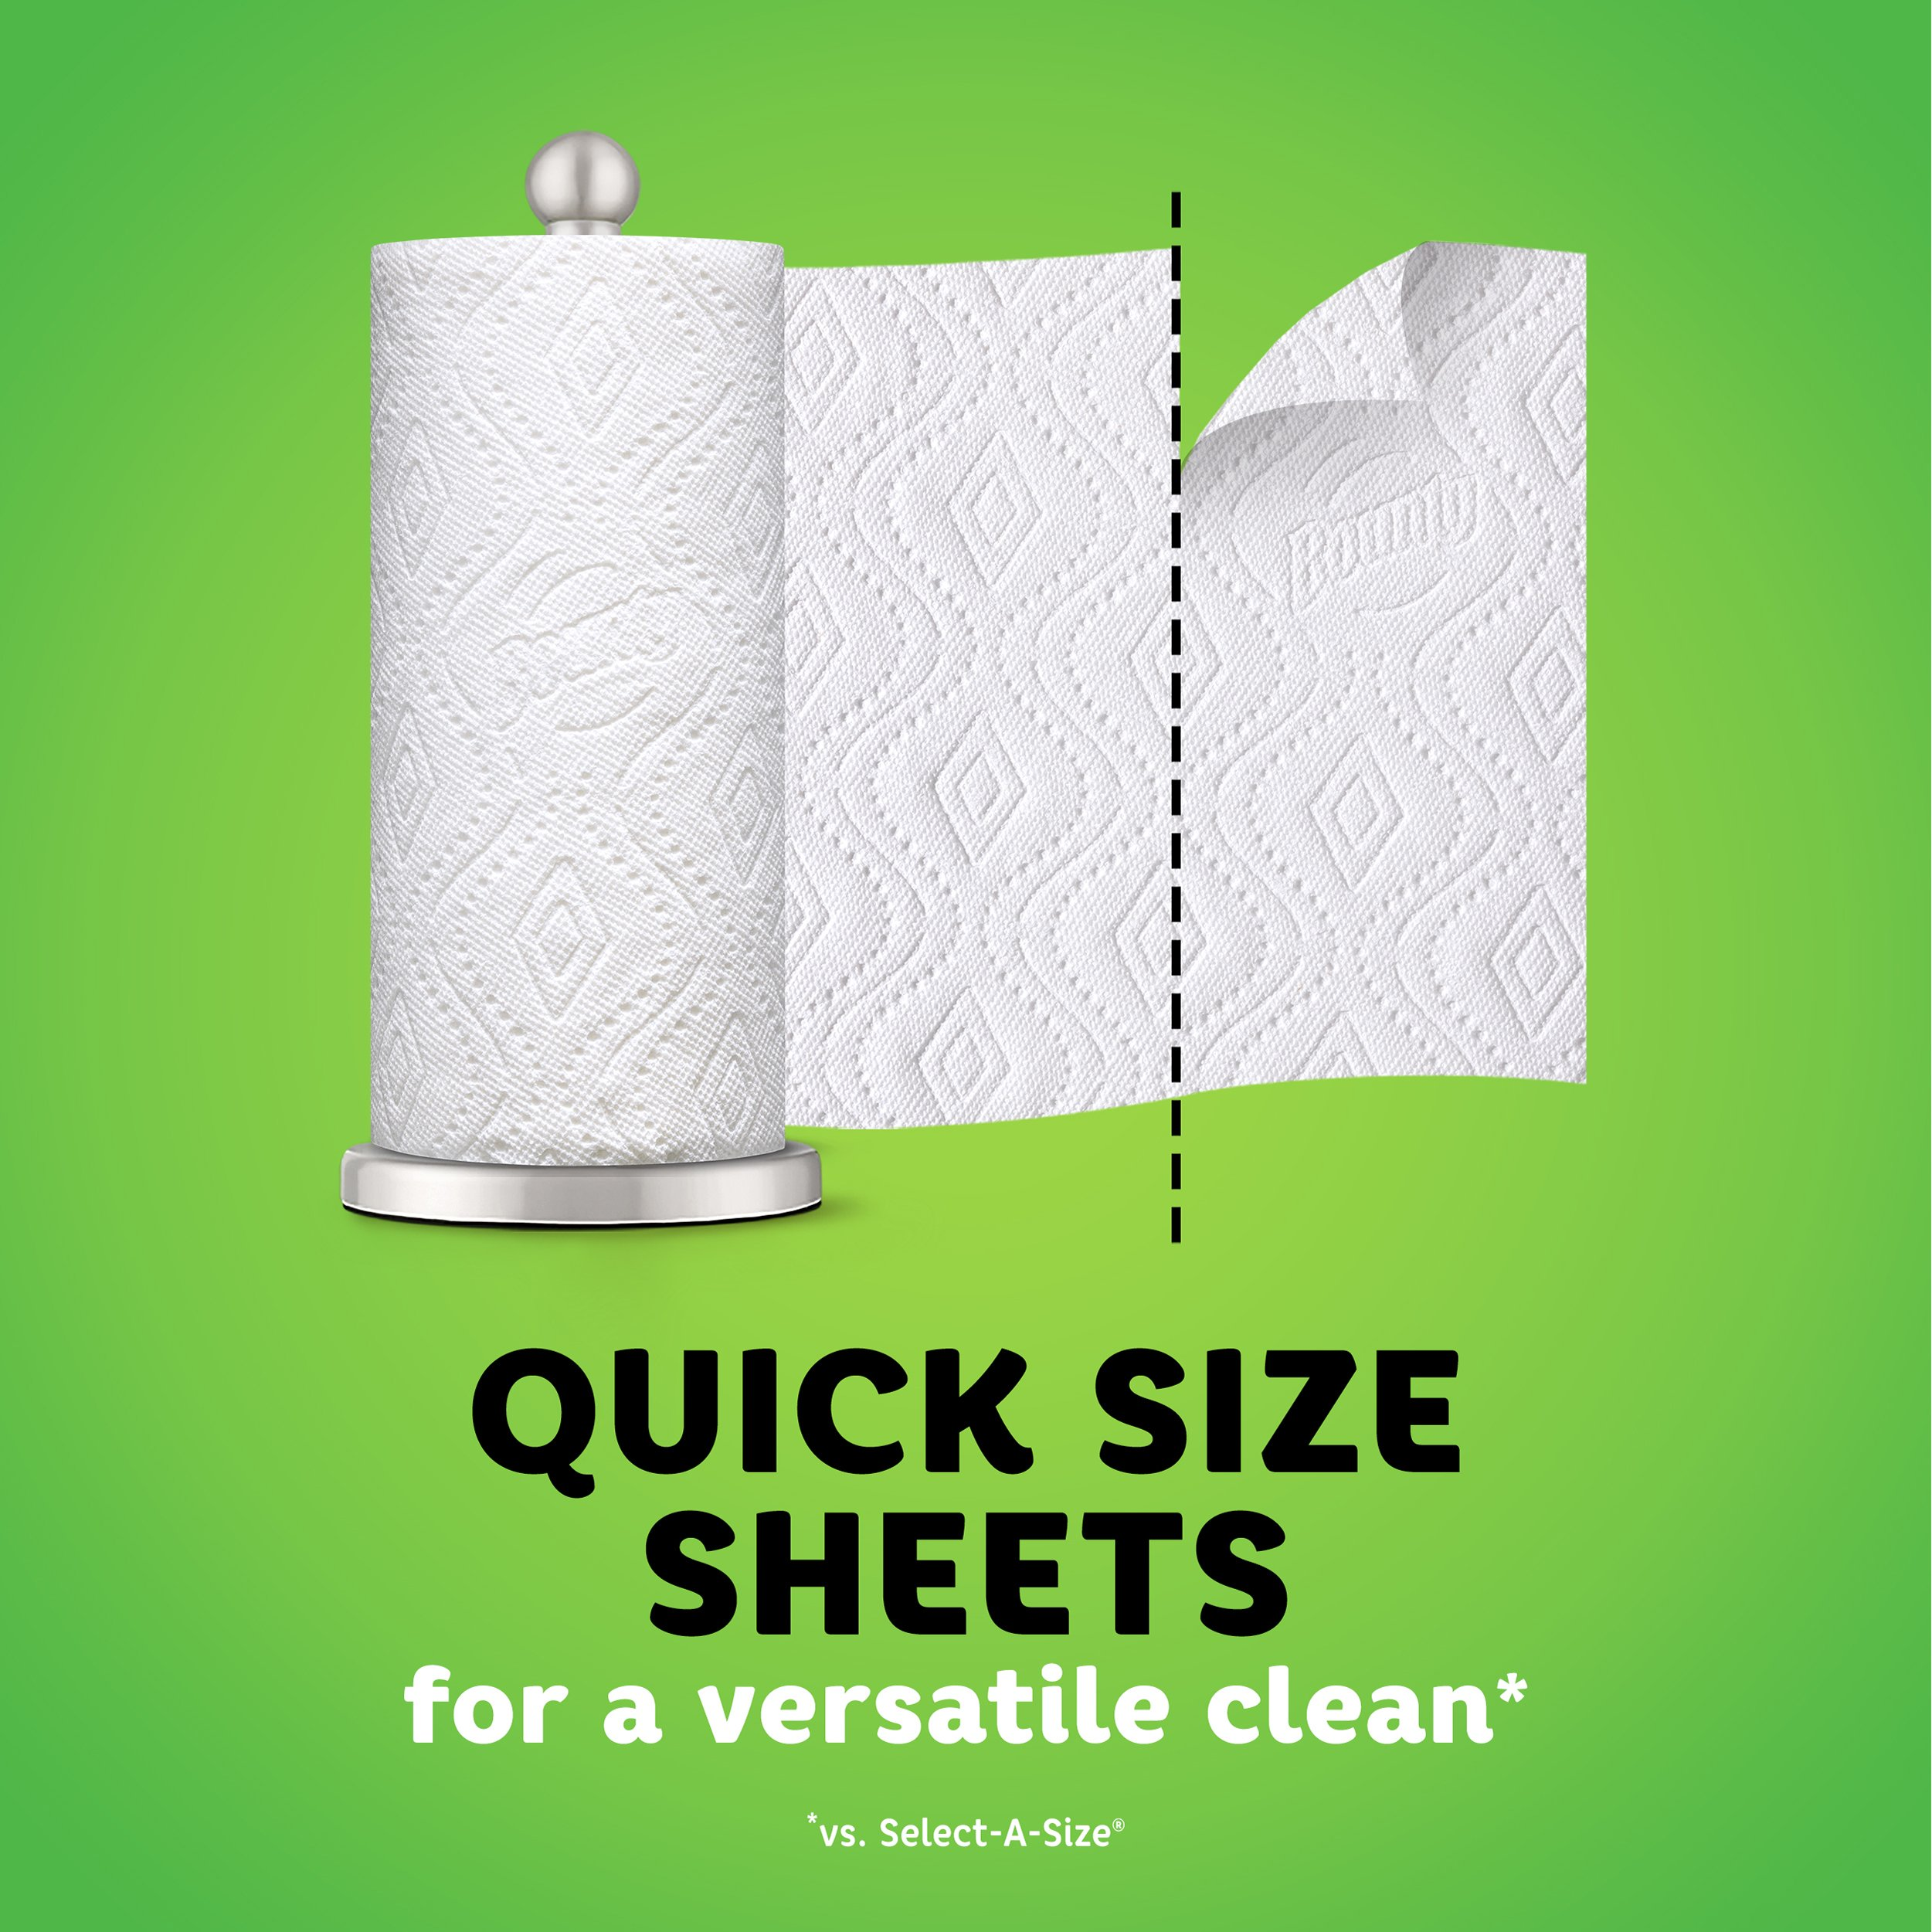 Bounty Quick-Size Paper Towels, White, Family Rolls, 12 Count (Equal to 30 Regular Rolls) by Bounty (Image #5)